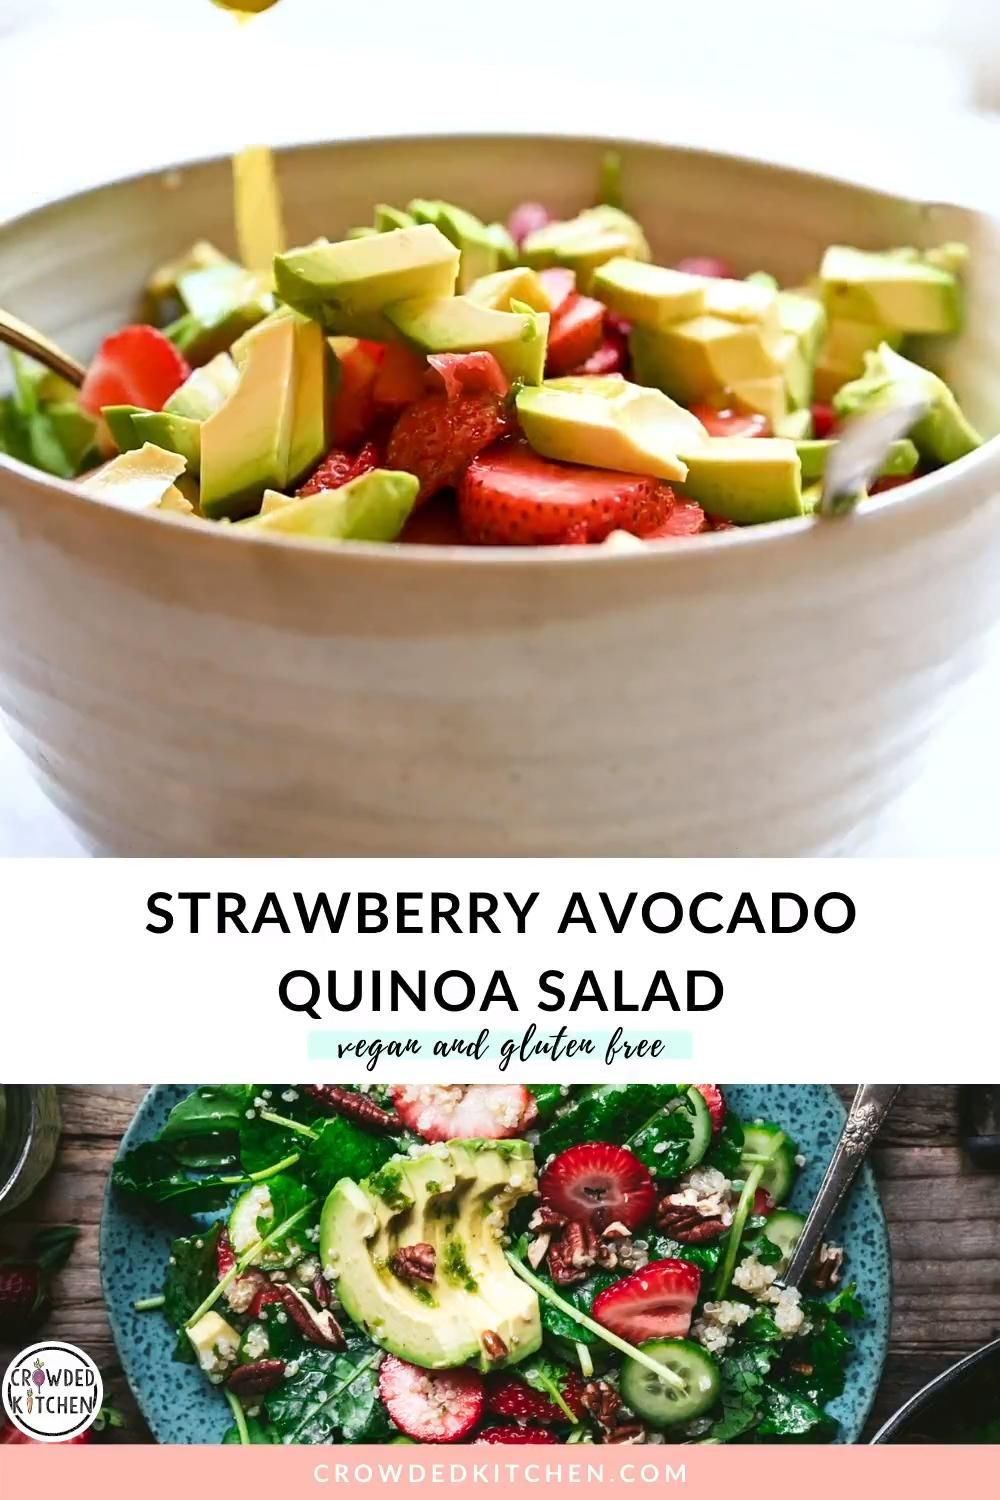 Strawberry Avocado Quinoa Salad